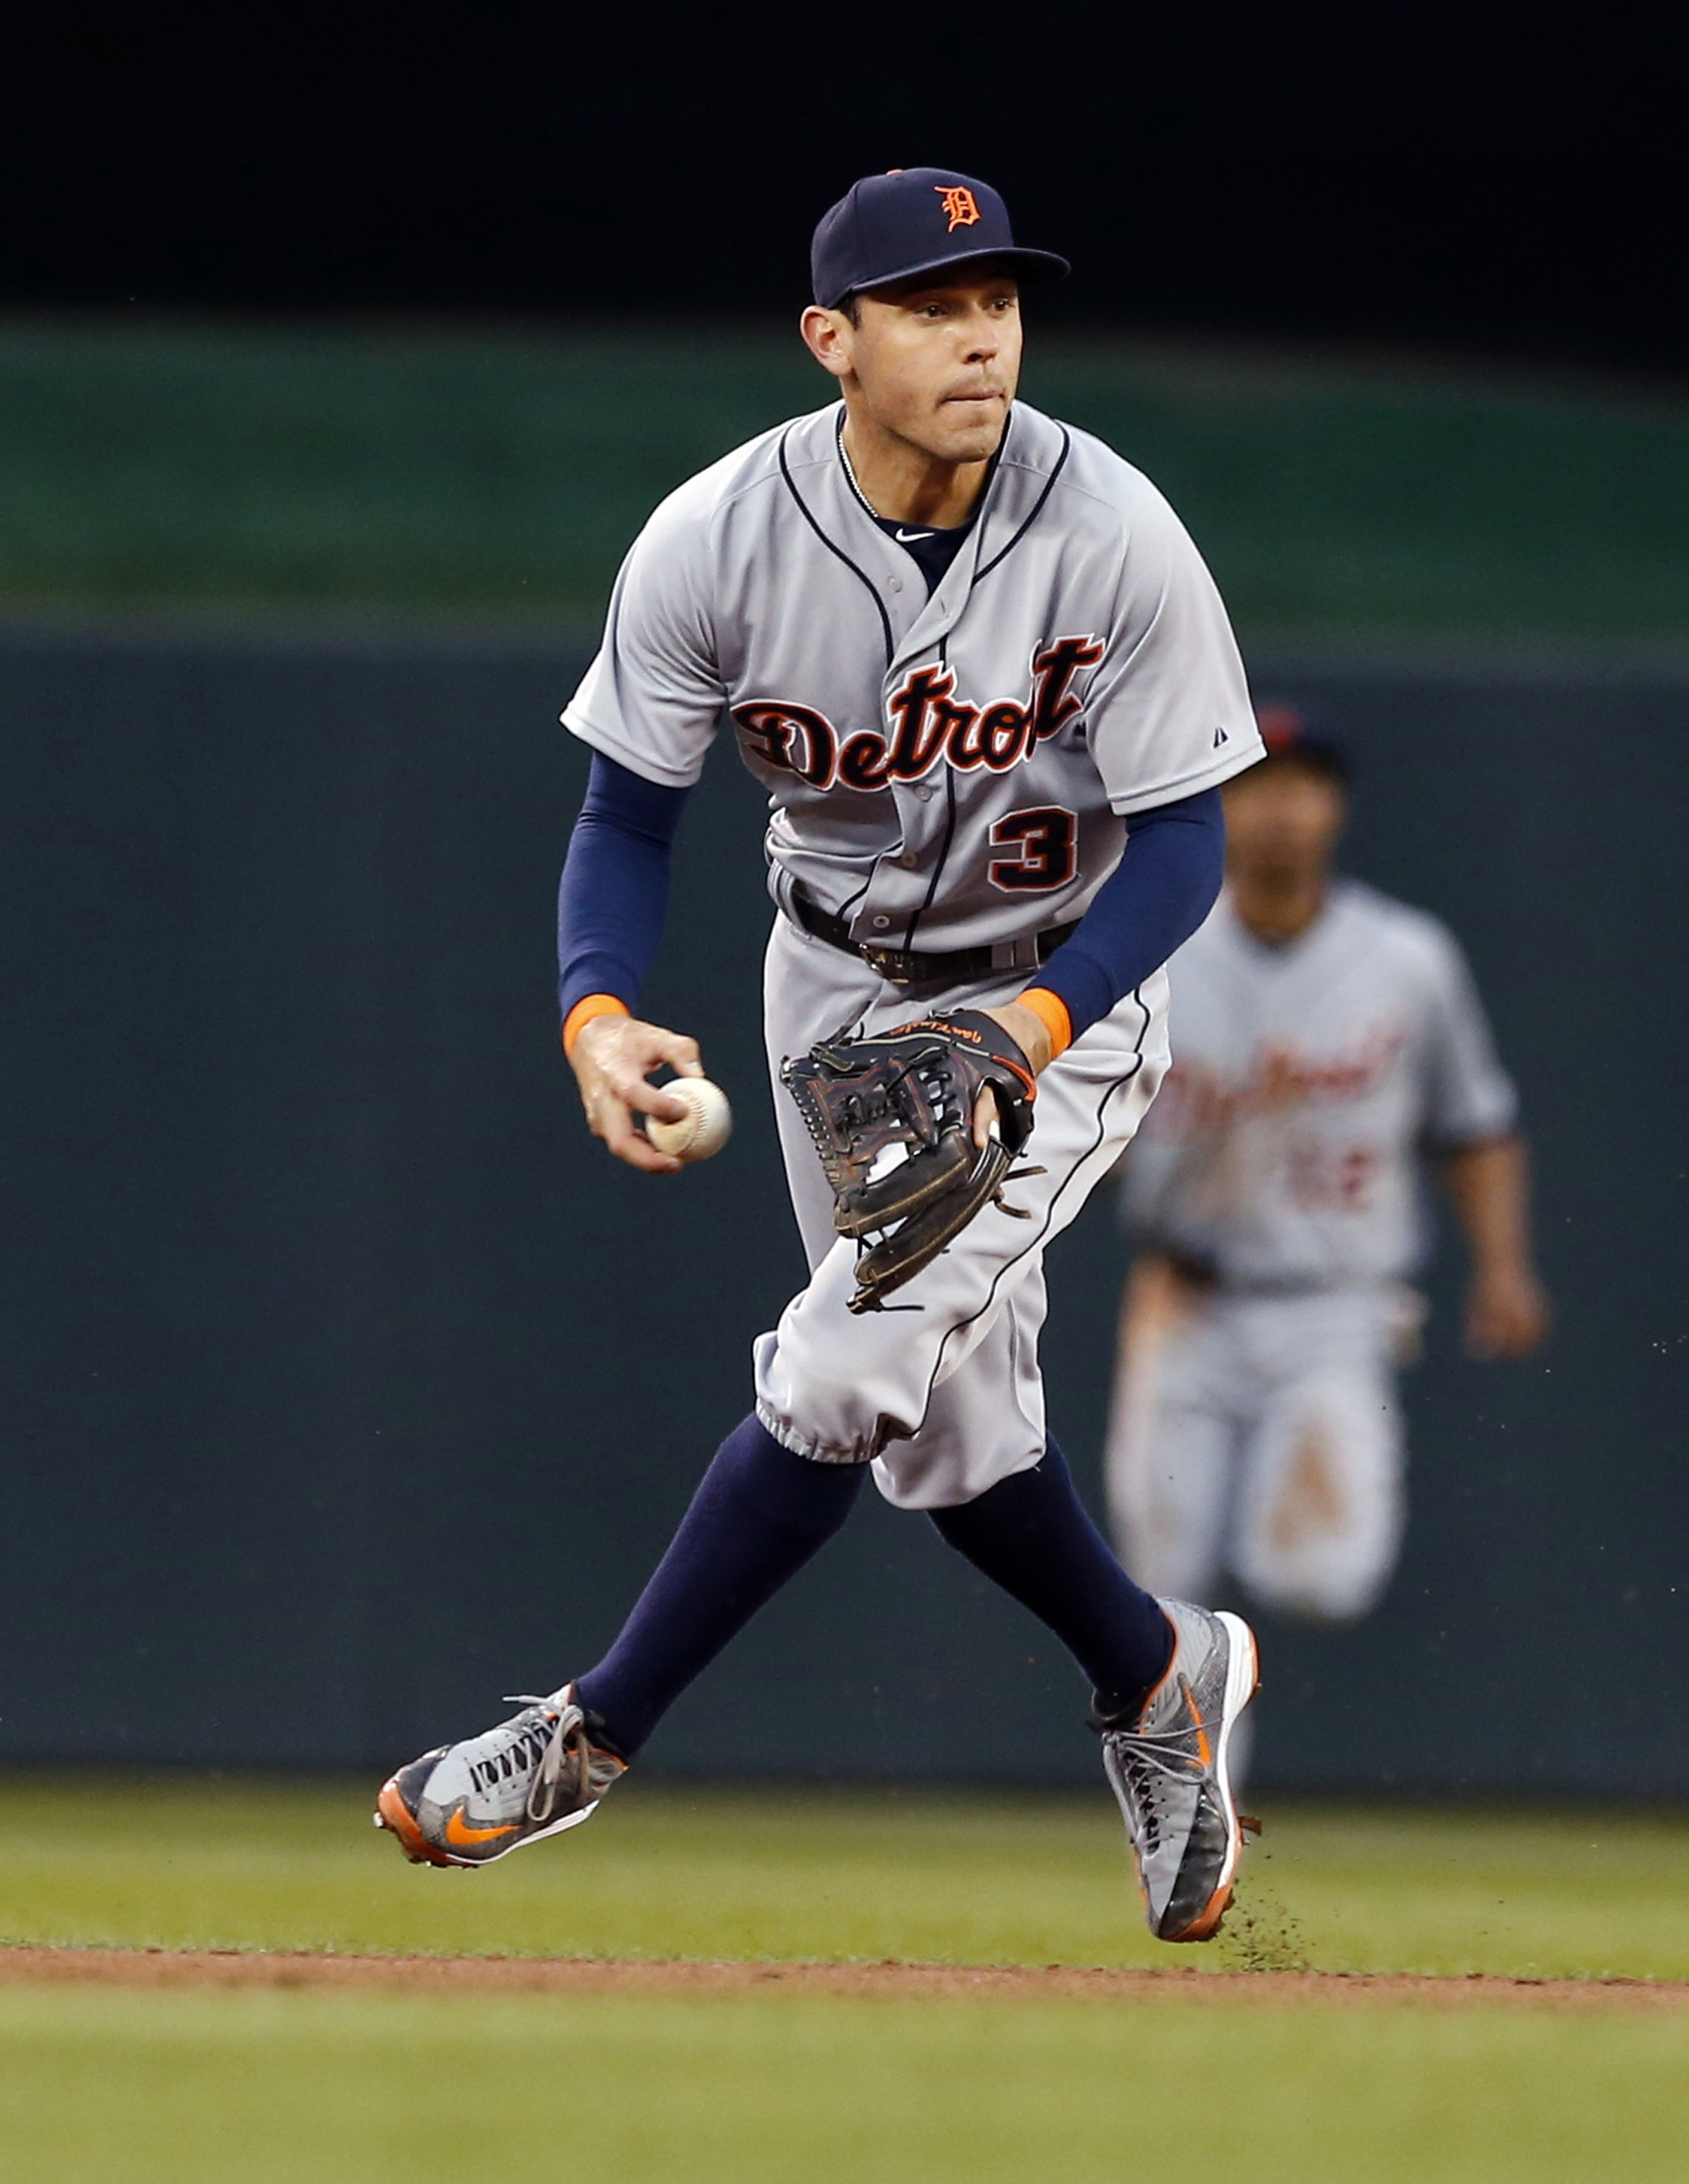 Detroit Tigers second baseman Ian Kinsler fields a grounder by Minnesota Twins' Torii Hunter before throwing him out in the third  inning of a baseball game, Tuesday, April 28, 2015, in Minneapolis. (AP Photo/Jim Mone)